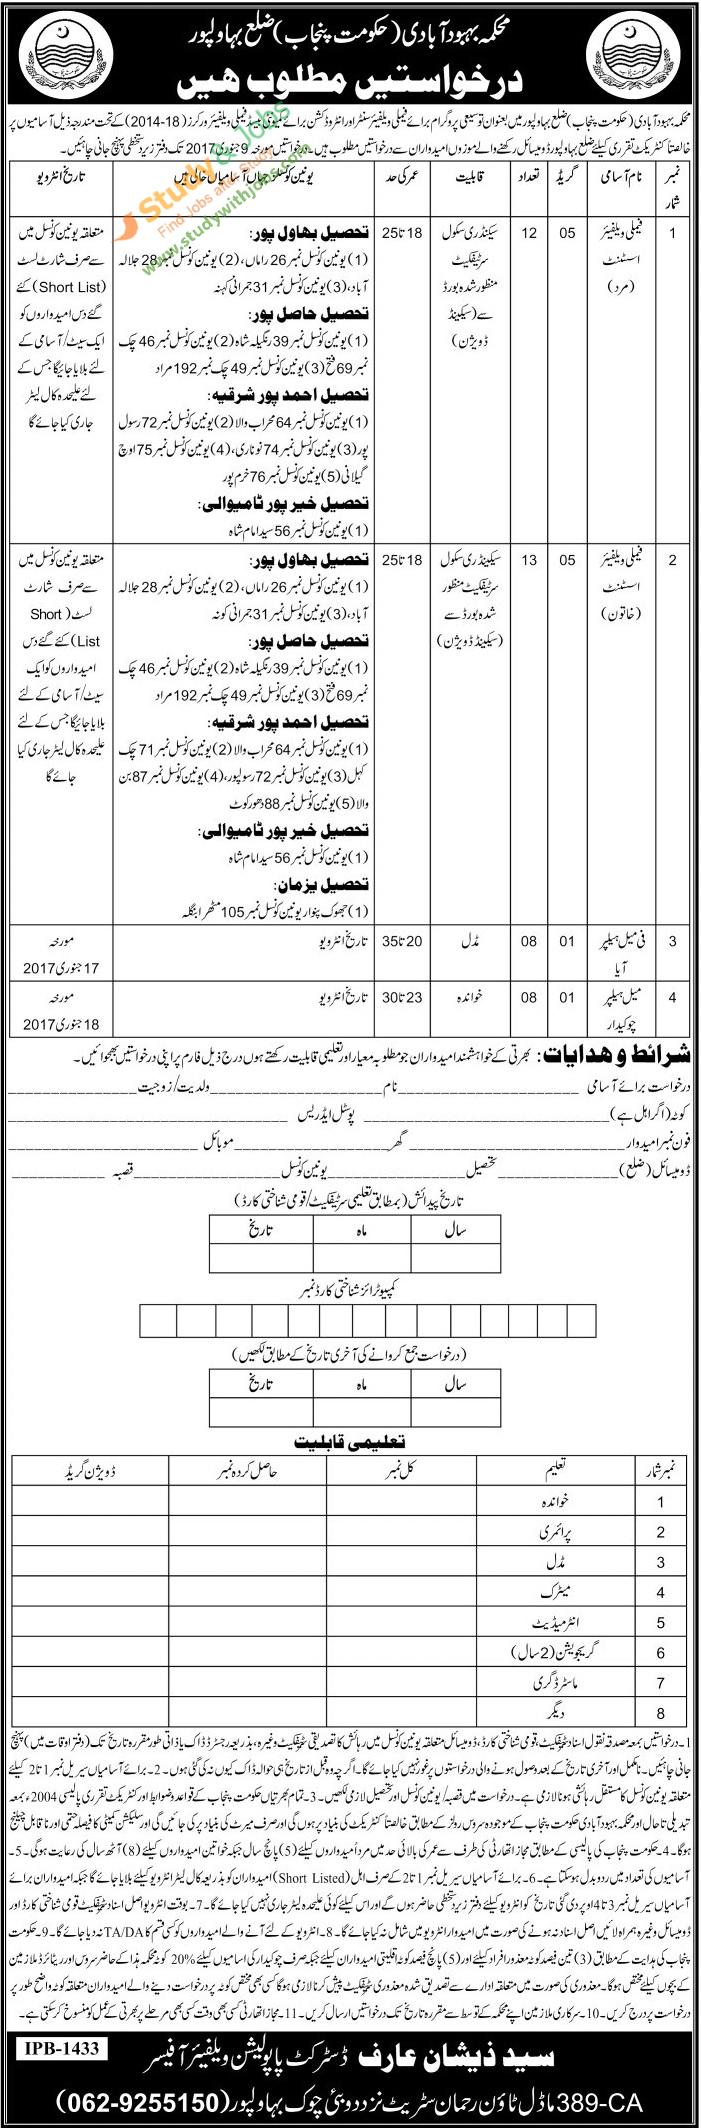 Best Jobs in potion Welfare Department Bahawalpur Online ... Application Form Government Jobs on government training, driver application form, government job vacancies, doctor application form, medical application form, government job application process, teaching application form, health care application form, government employment, government newsletter, government order form, bank application form, government job openings, finance application form, government events, government benefits, security application form, government job application cover letter, government articles, business application form,